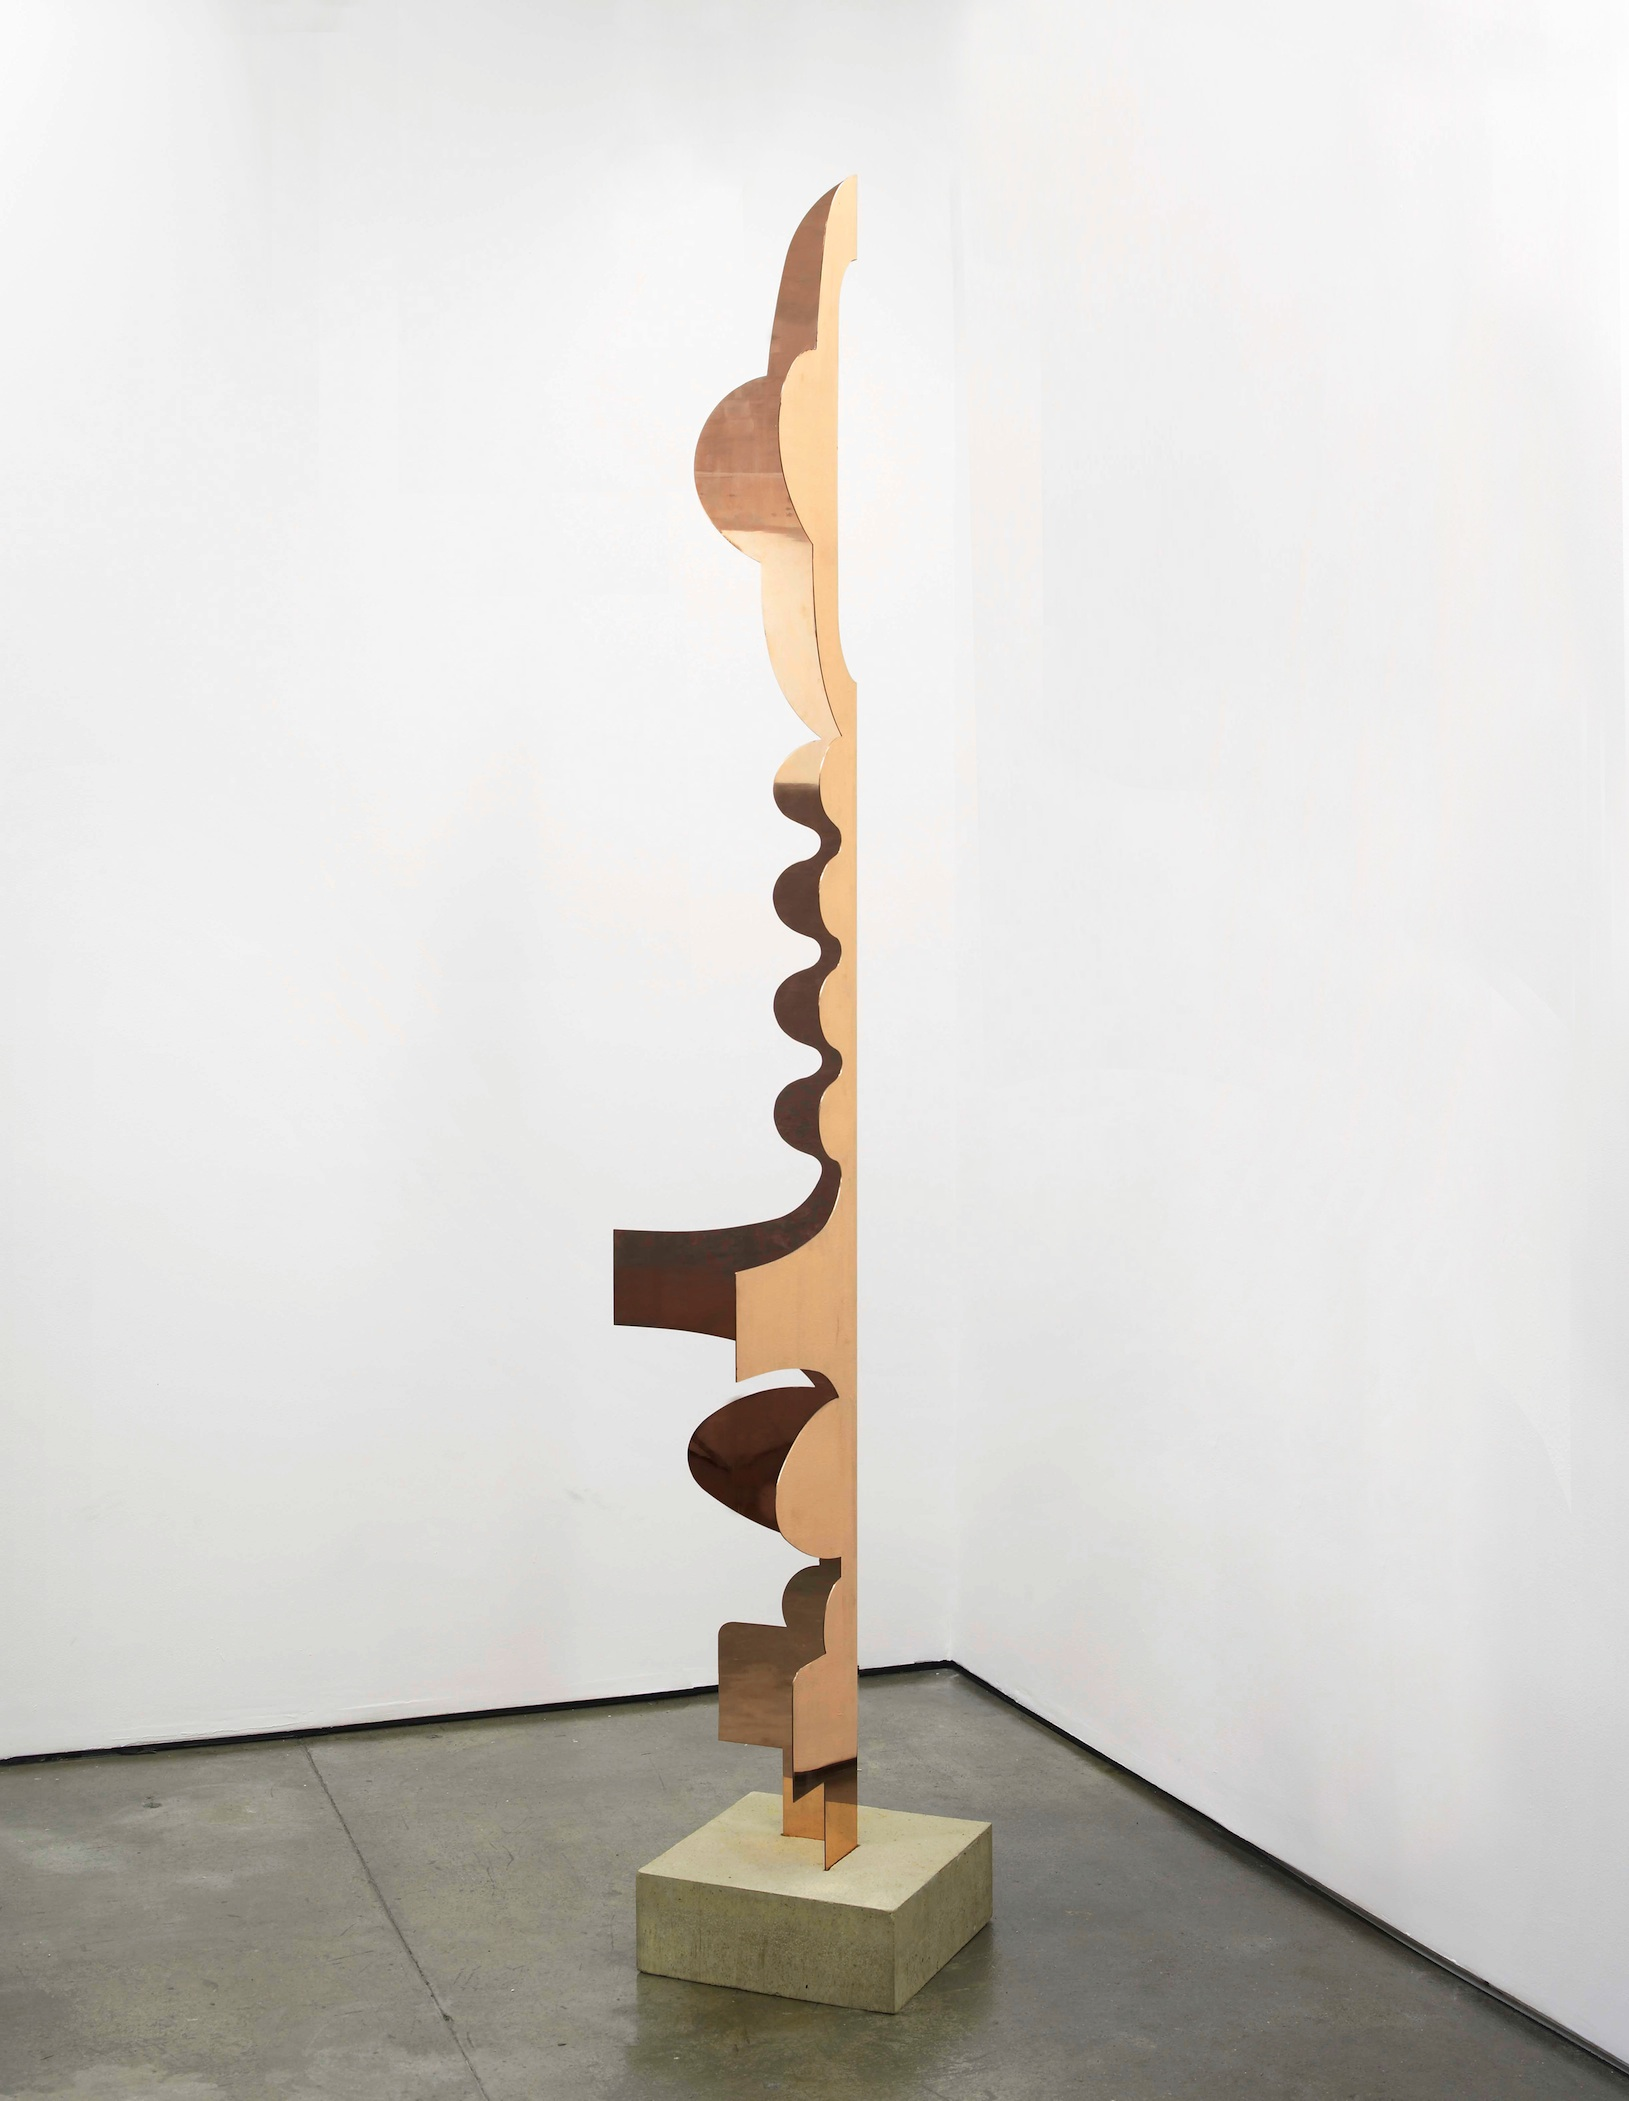 Centrefold 2011 Copper, concrete base 246 x 54 x 54 cm / 96.9 x 21.3 x 21.3 in